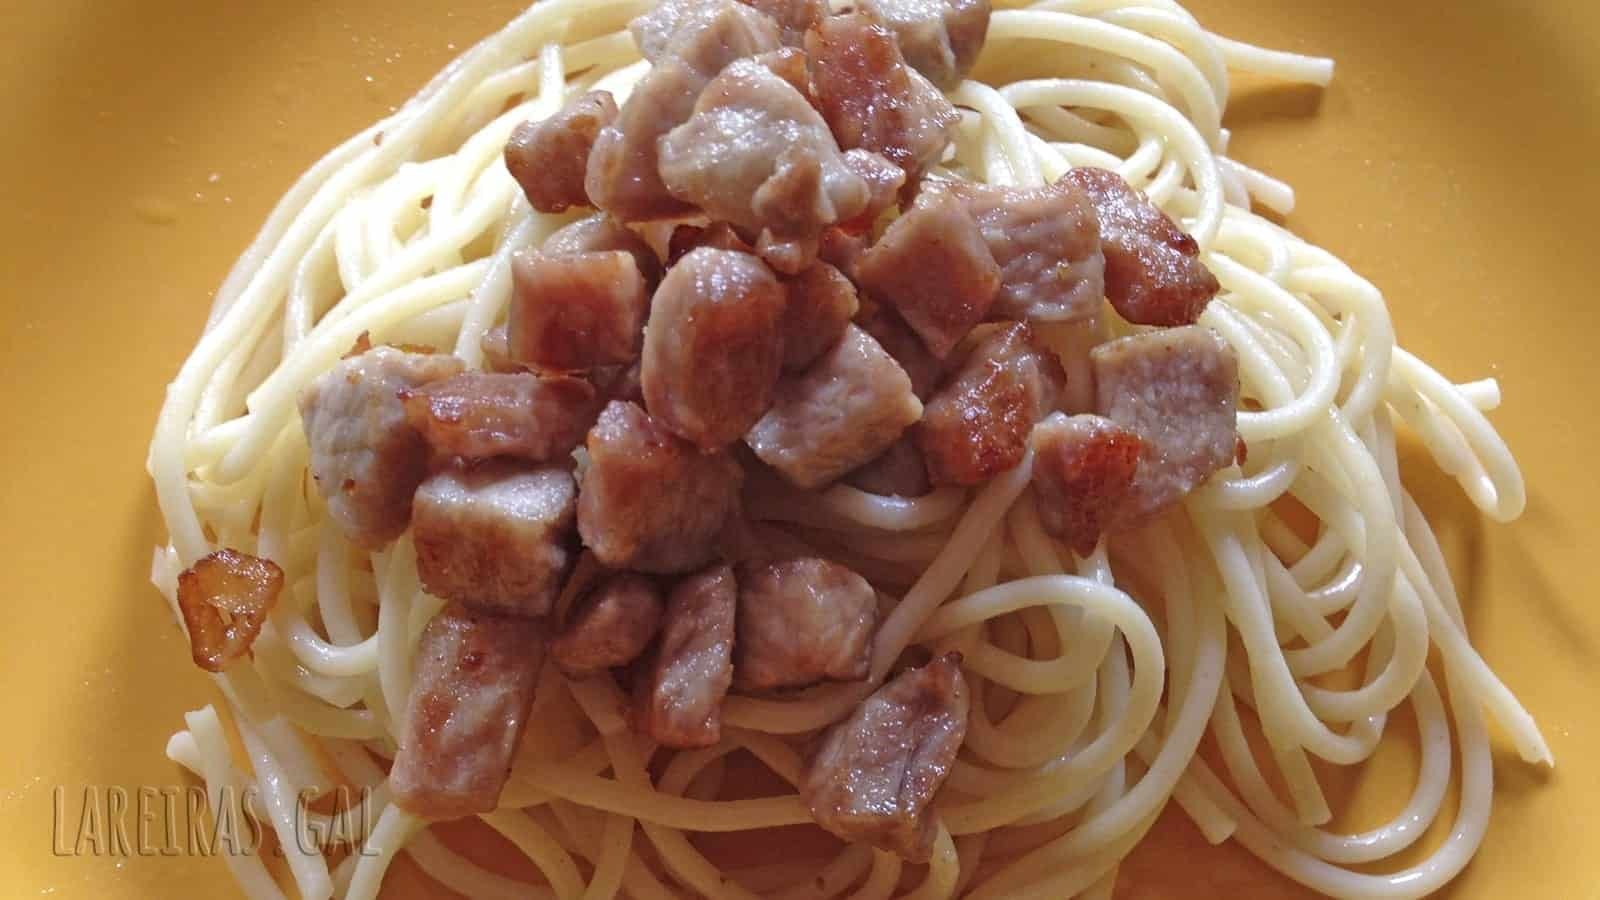 Spaghetti with pork loin